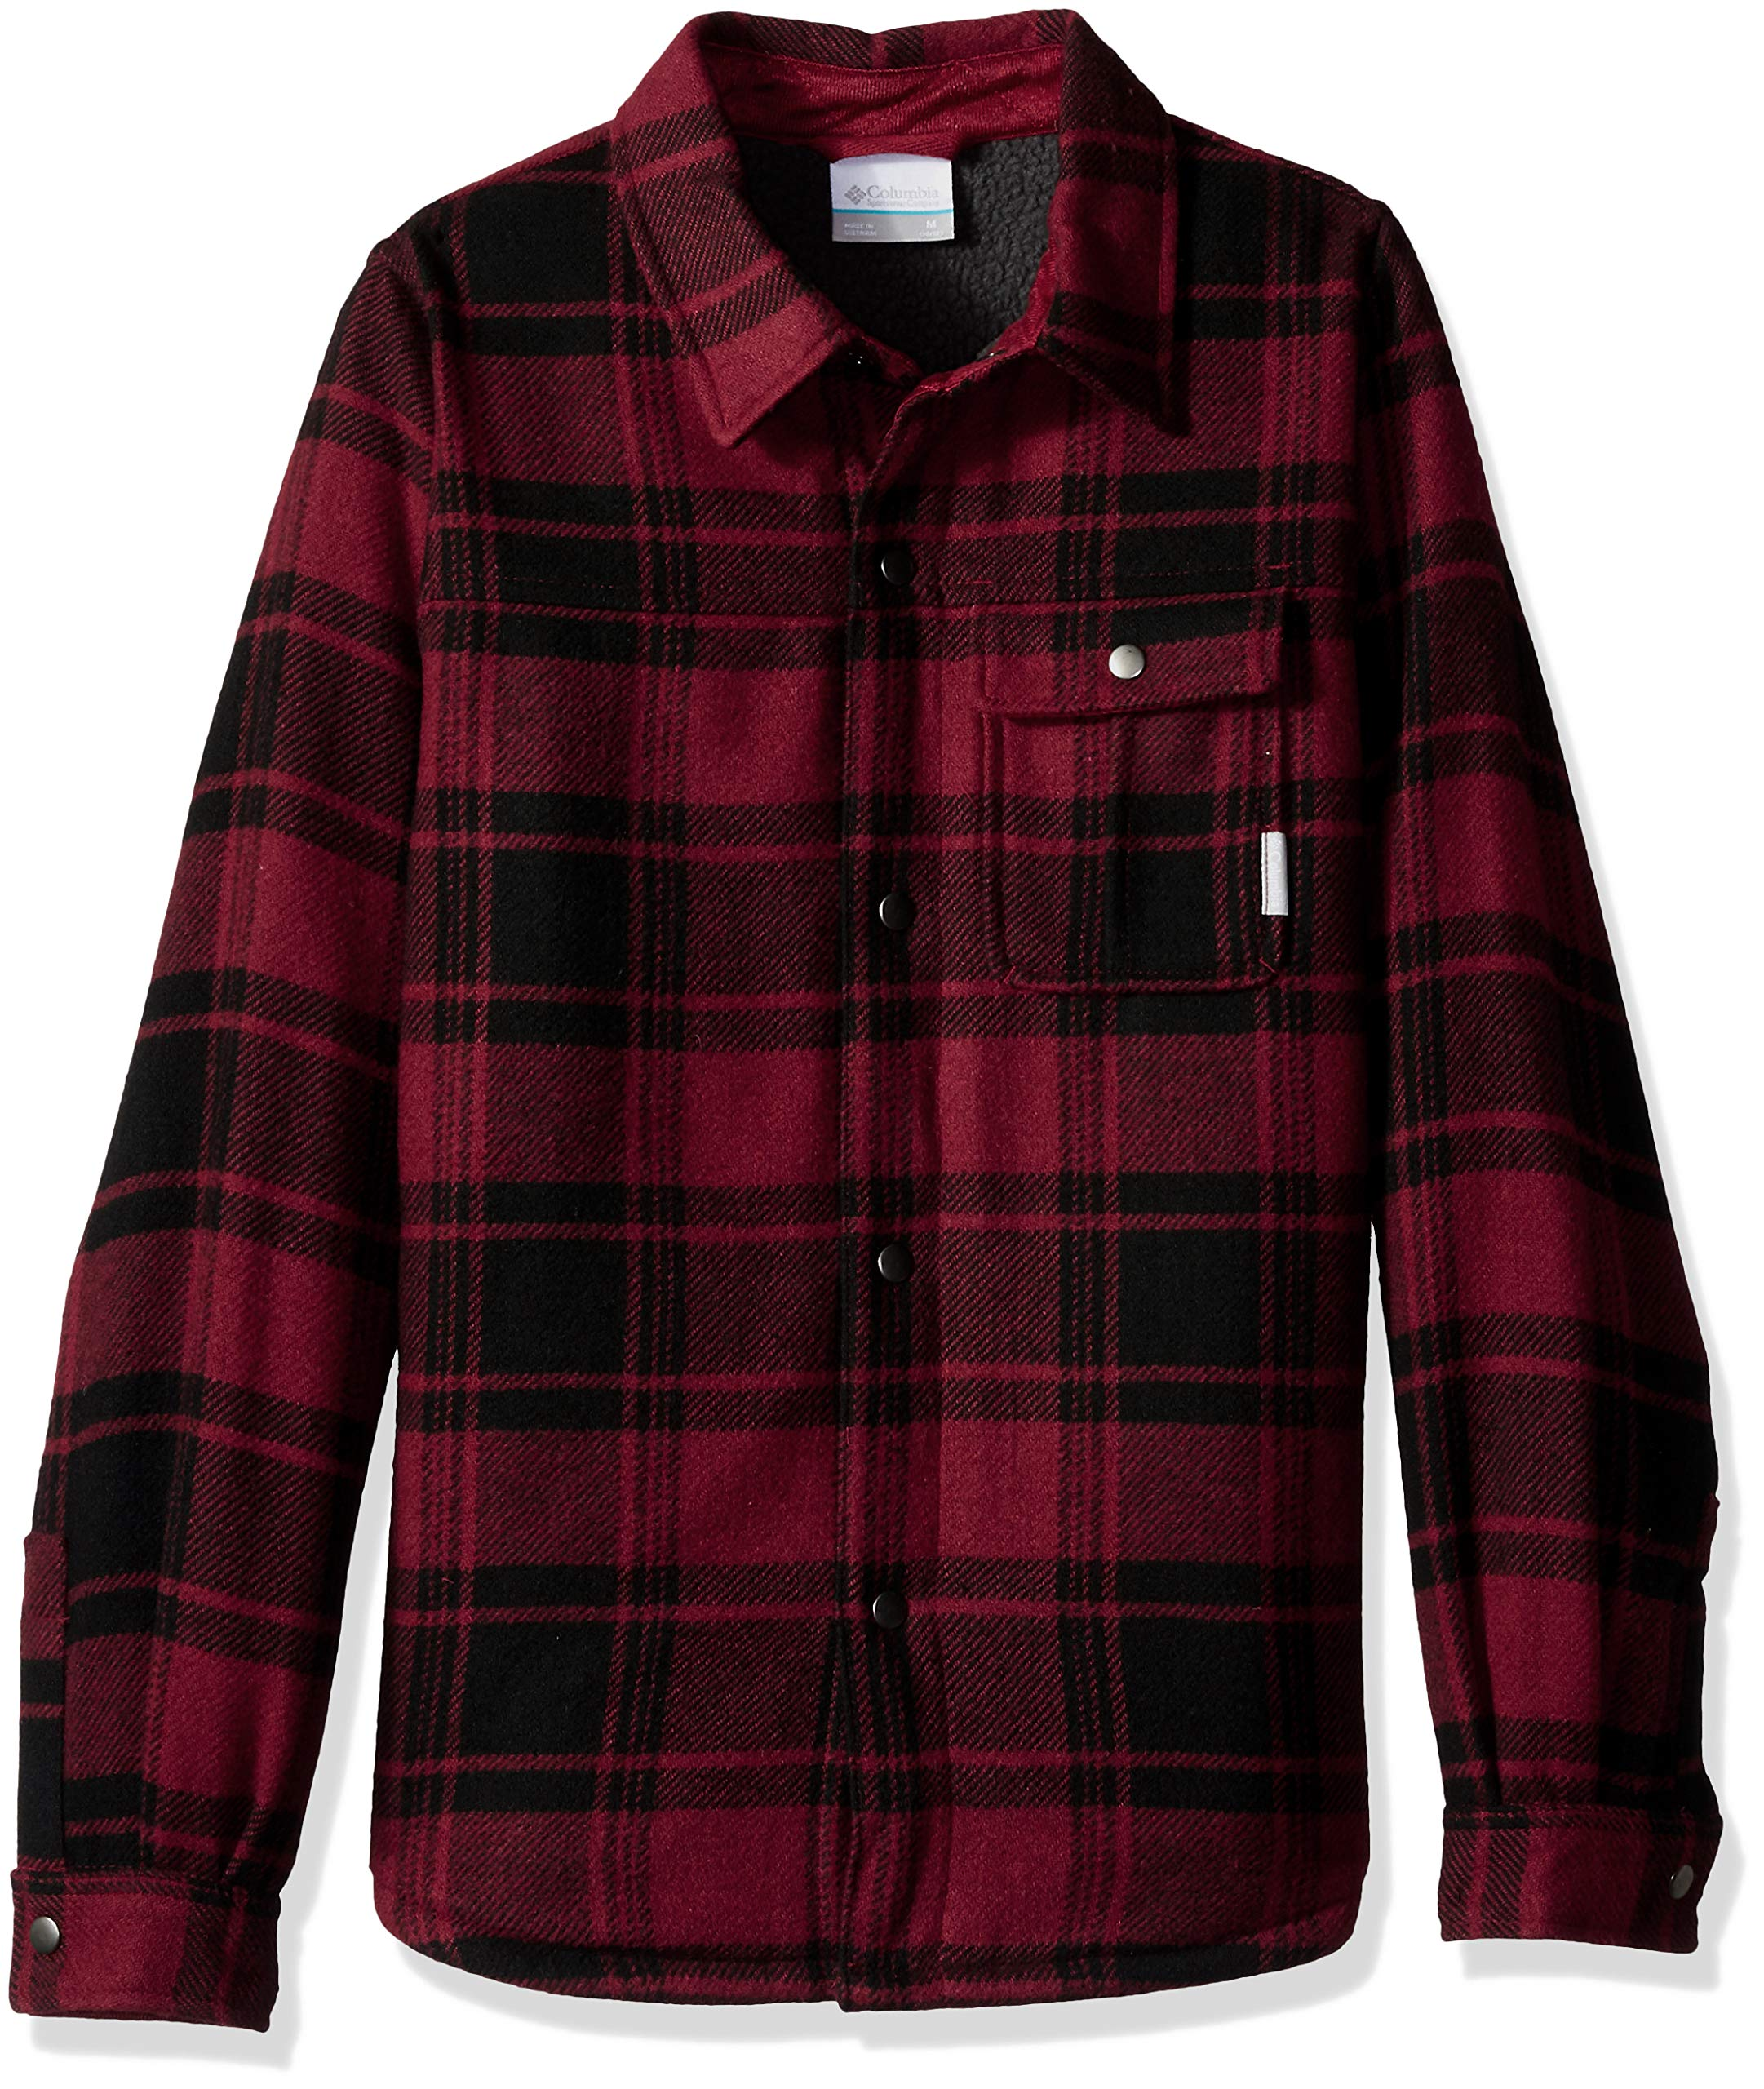 Columbia Boys' Little Windward Sherpa-LinedShirt Jacket, Red Element Plaid, XX-Small by Columbia